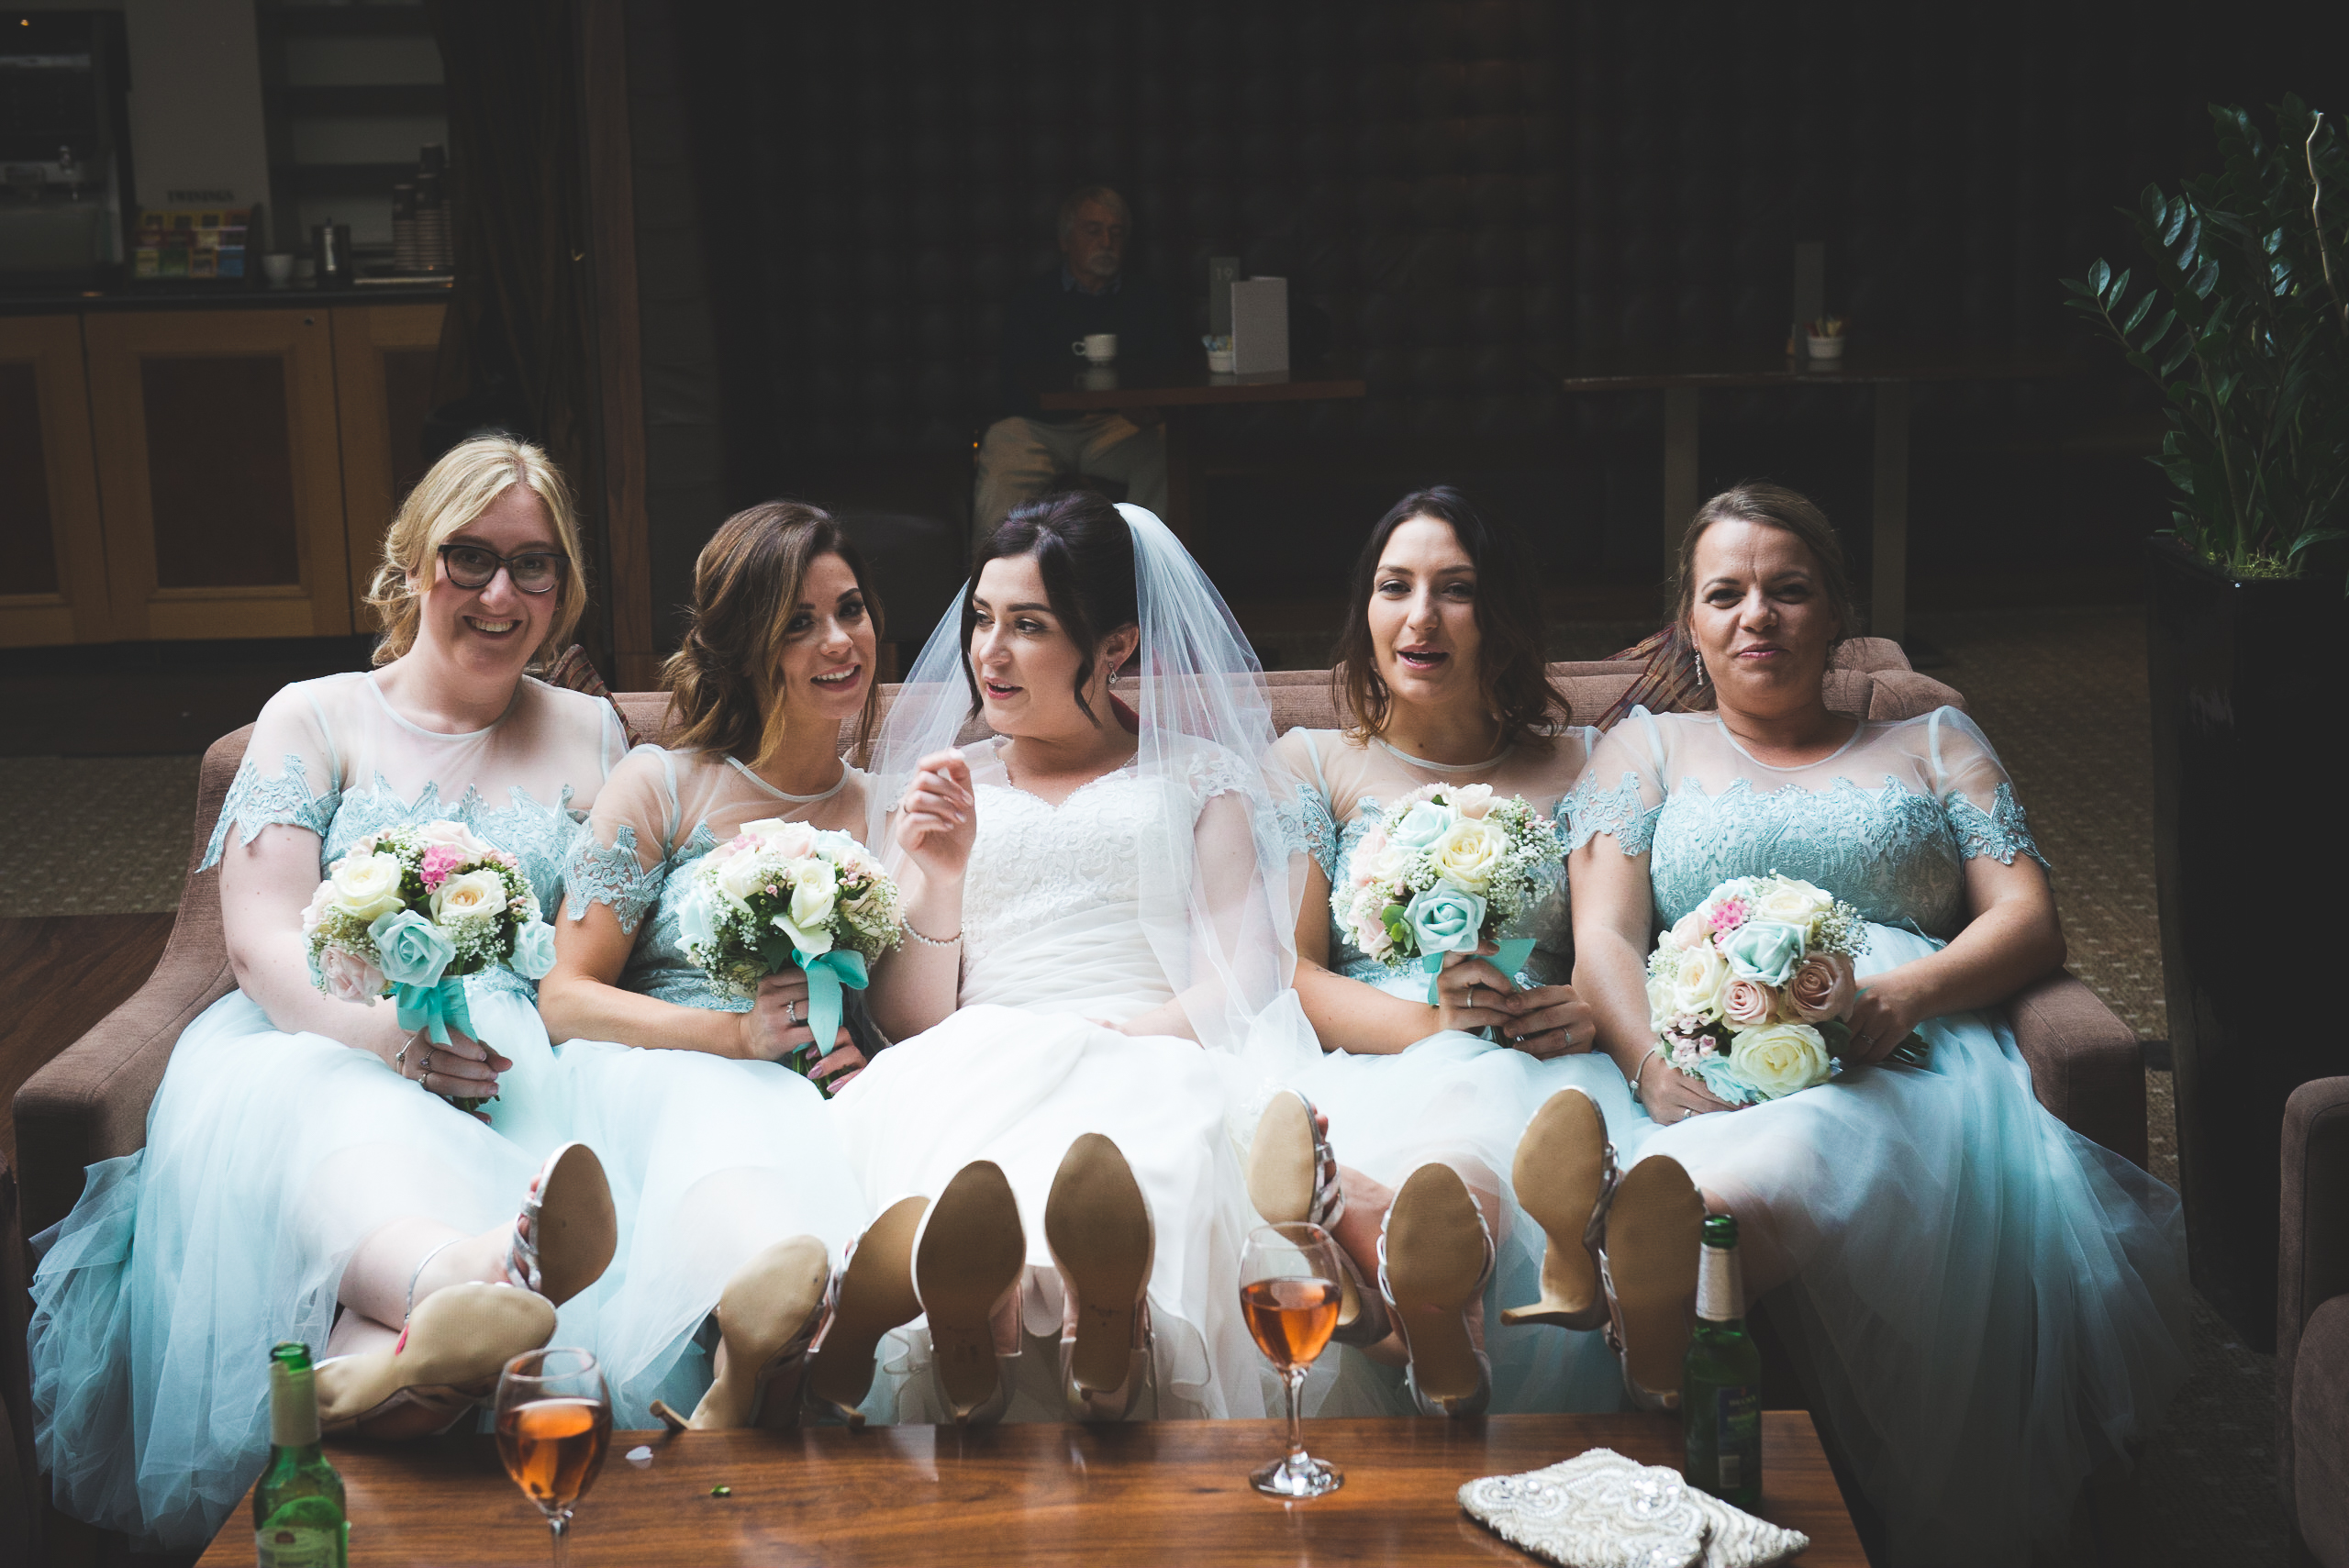 Bridesmaids, Bride, shoes, putting your feet up